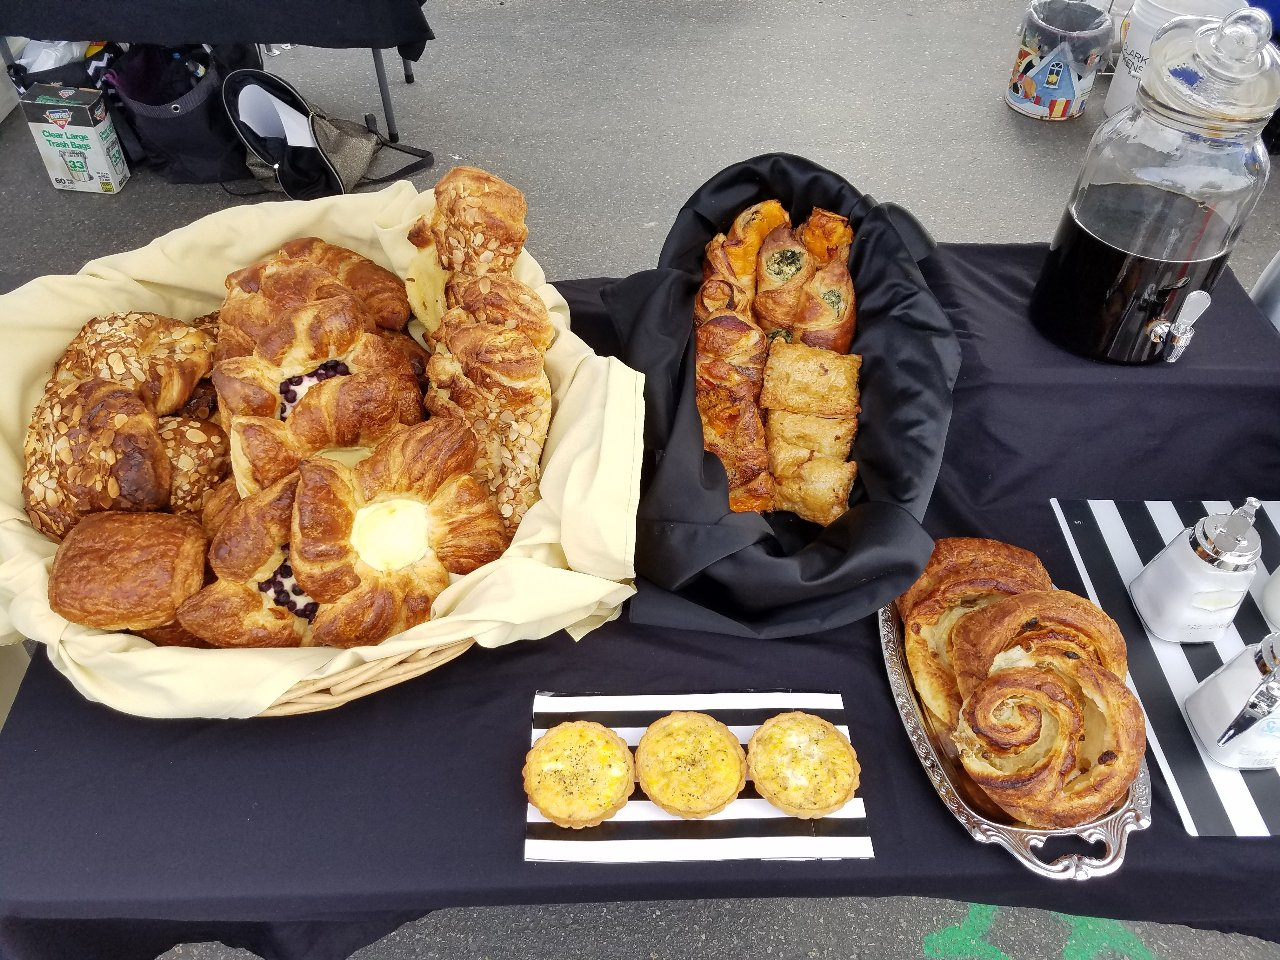 Delicious Breakfast Pastries on a Table by Petite Astorias, Escondido, California